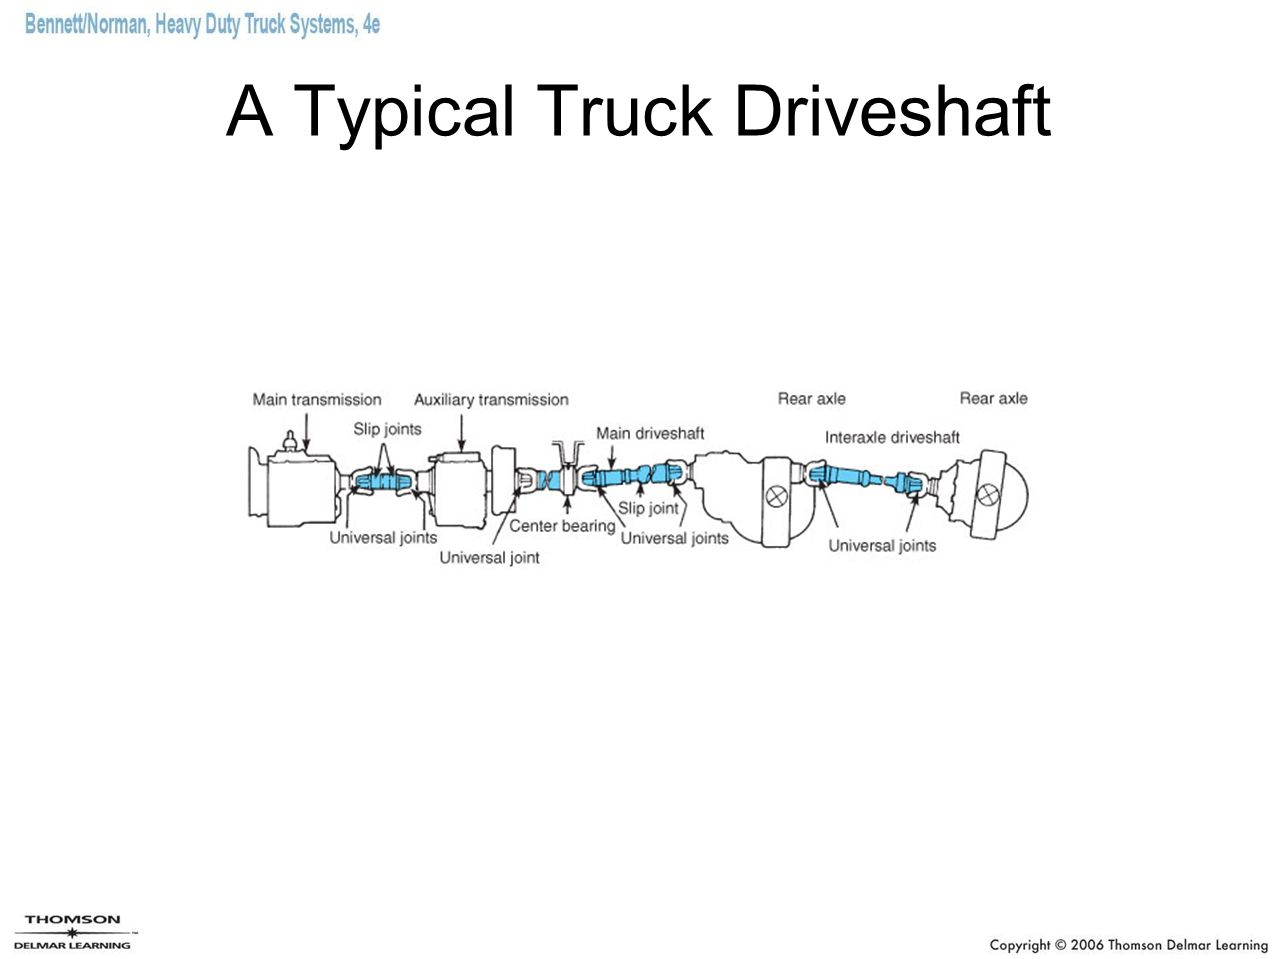 A Typical Truck Driveshaft